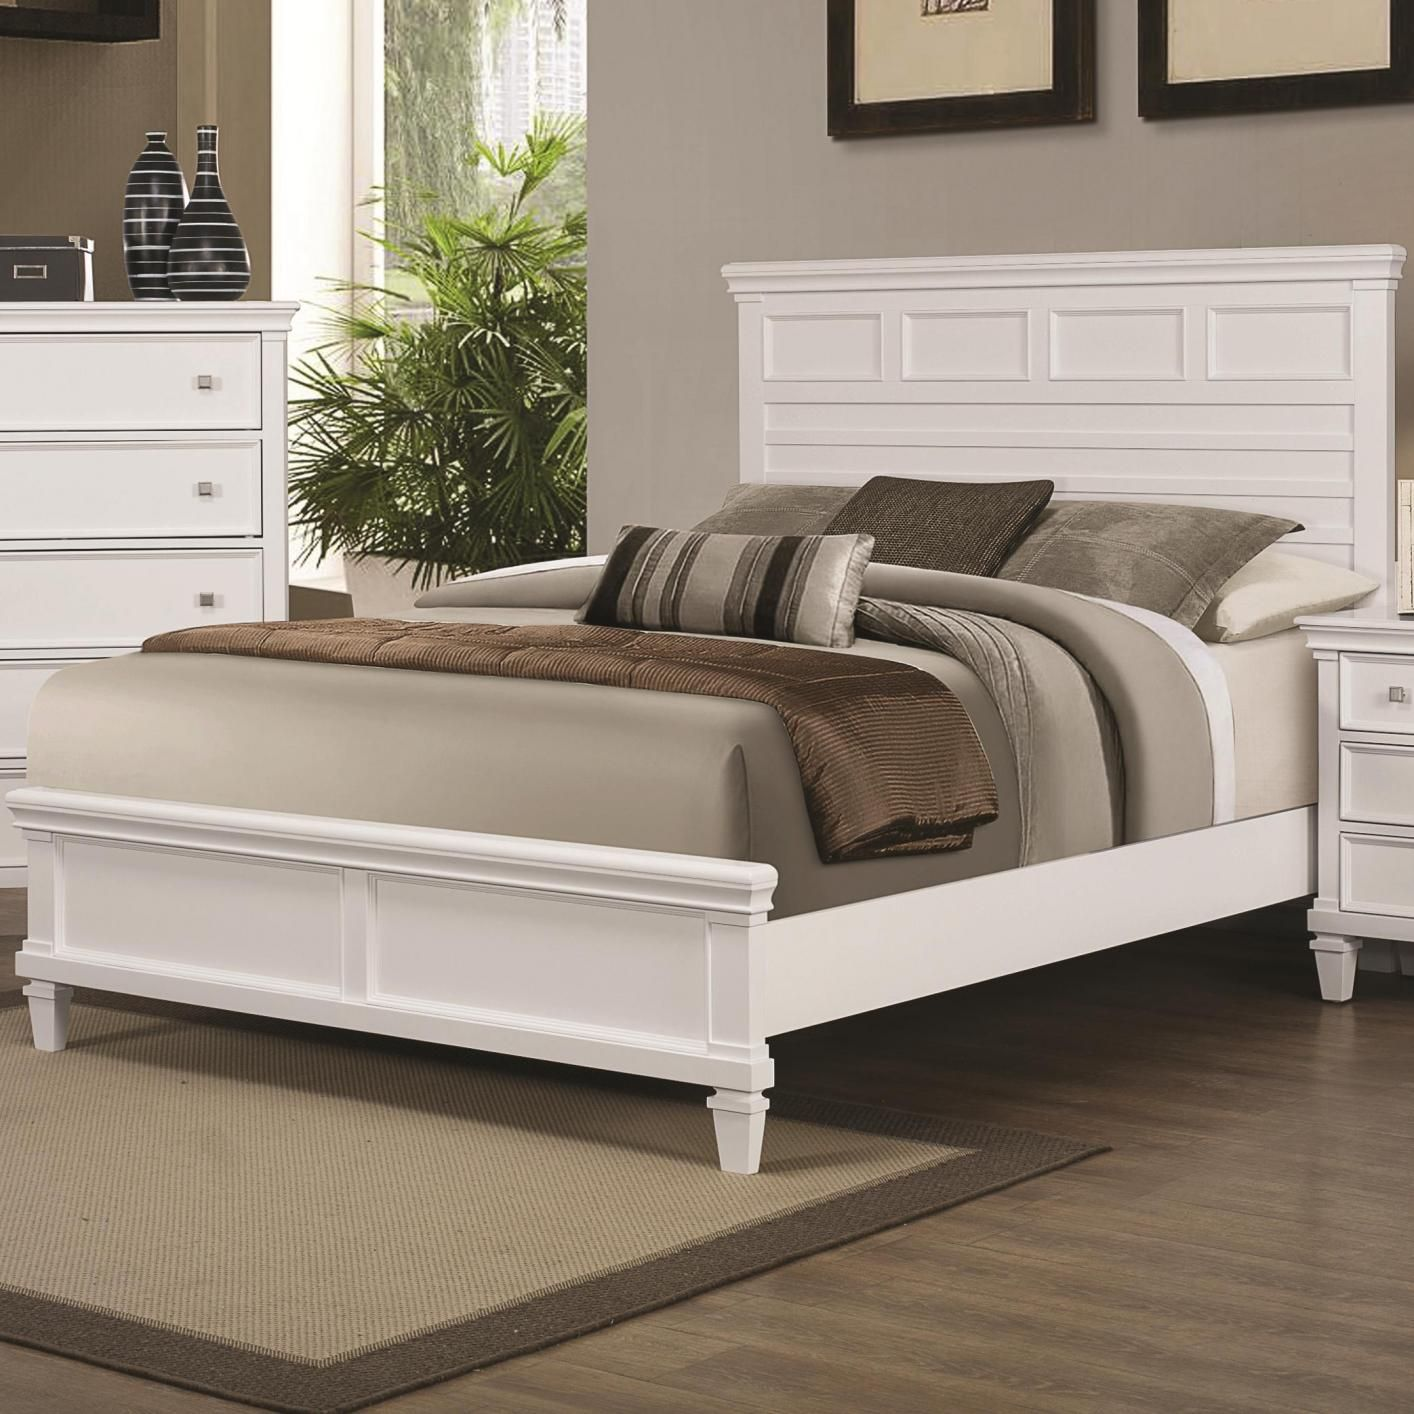 White Wood King Bed Unique bedroom furniture, Queen